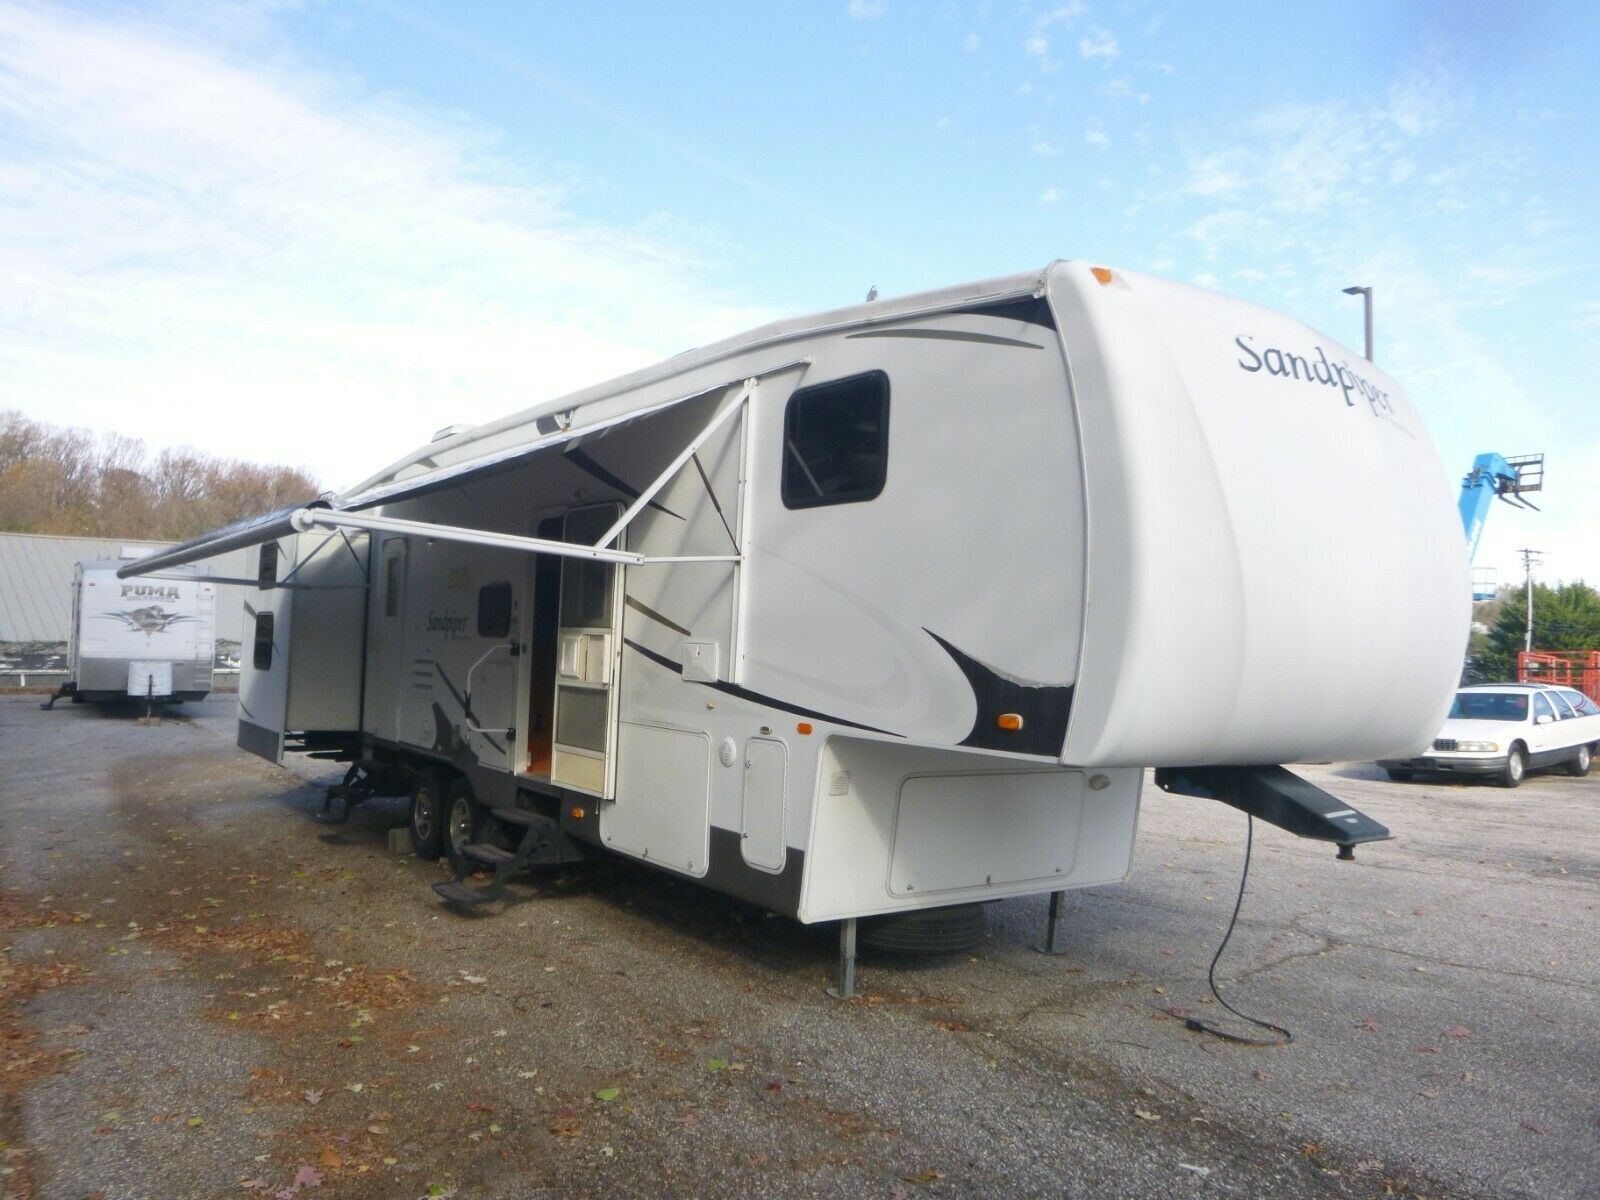 fairly decent 2009 Forest River Sandpiper camper for sale